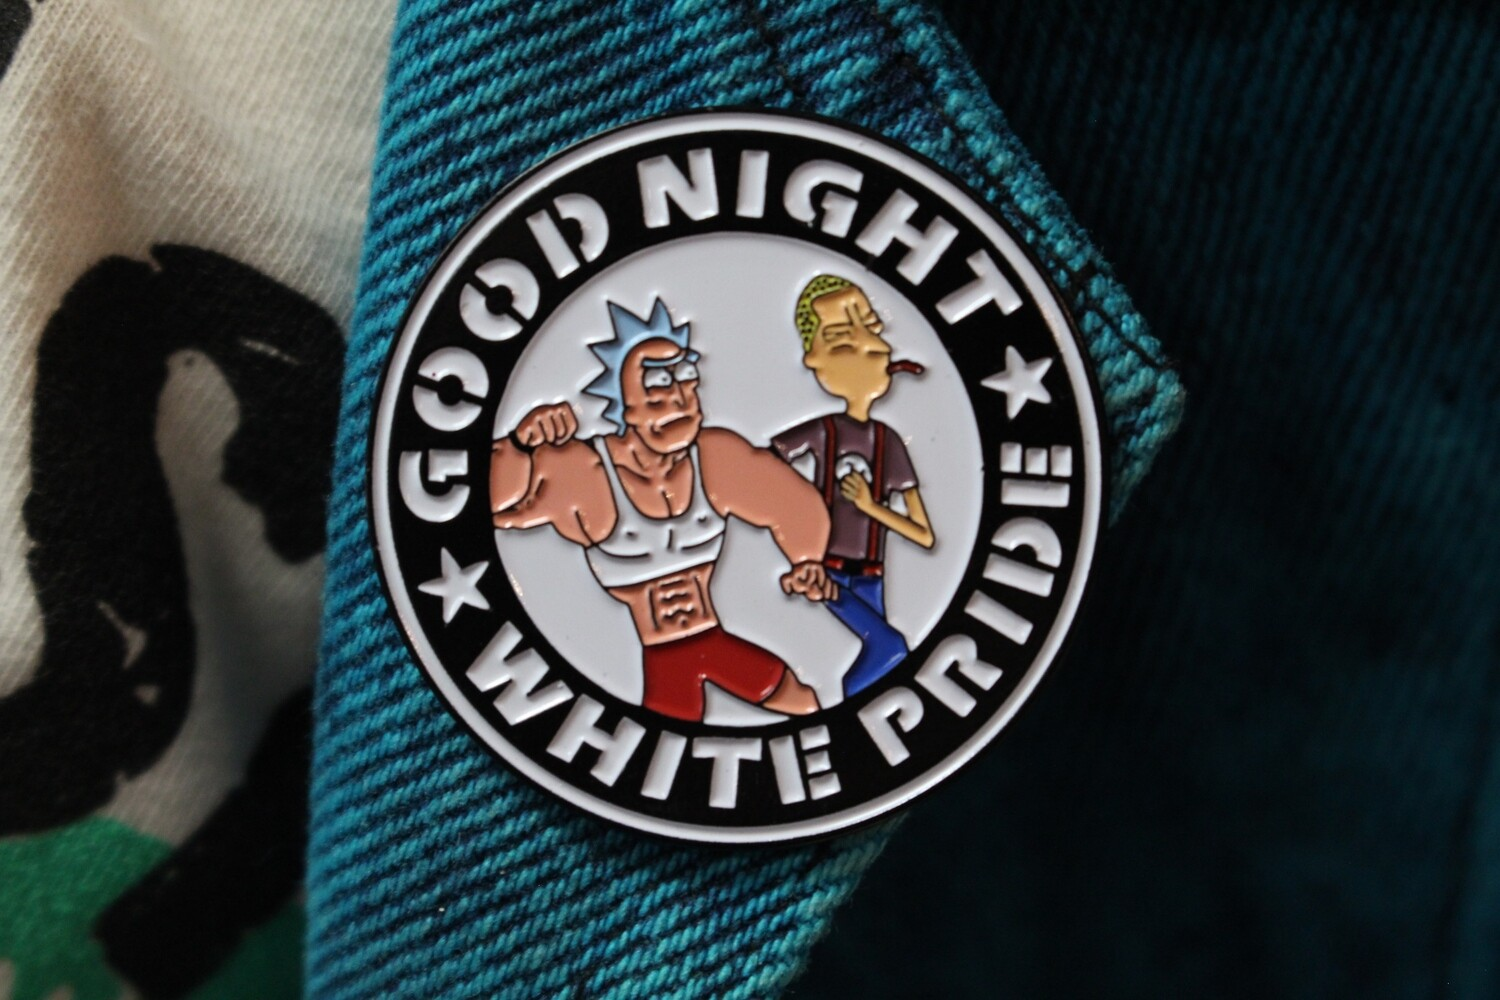 Rick Sanchez Good Night White Pride Pin